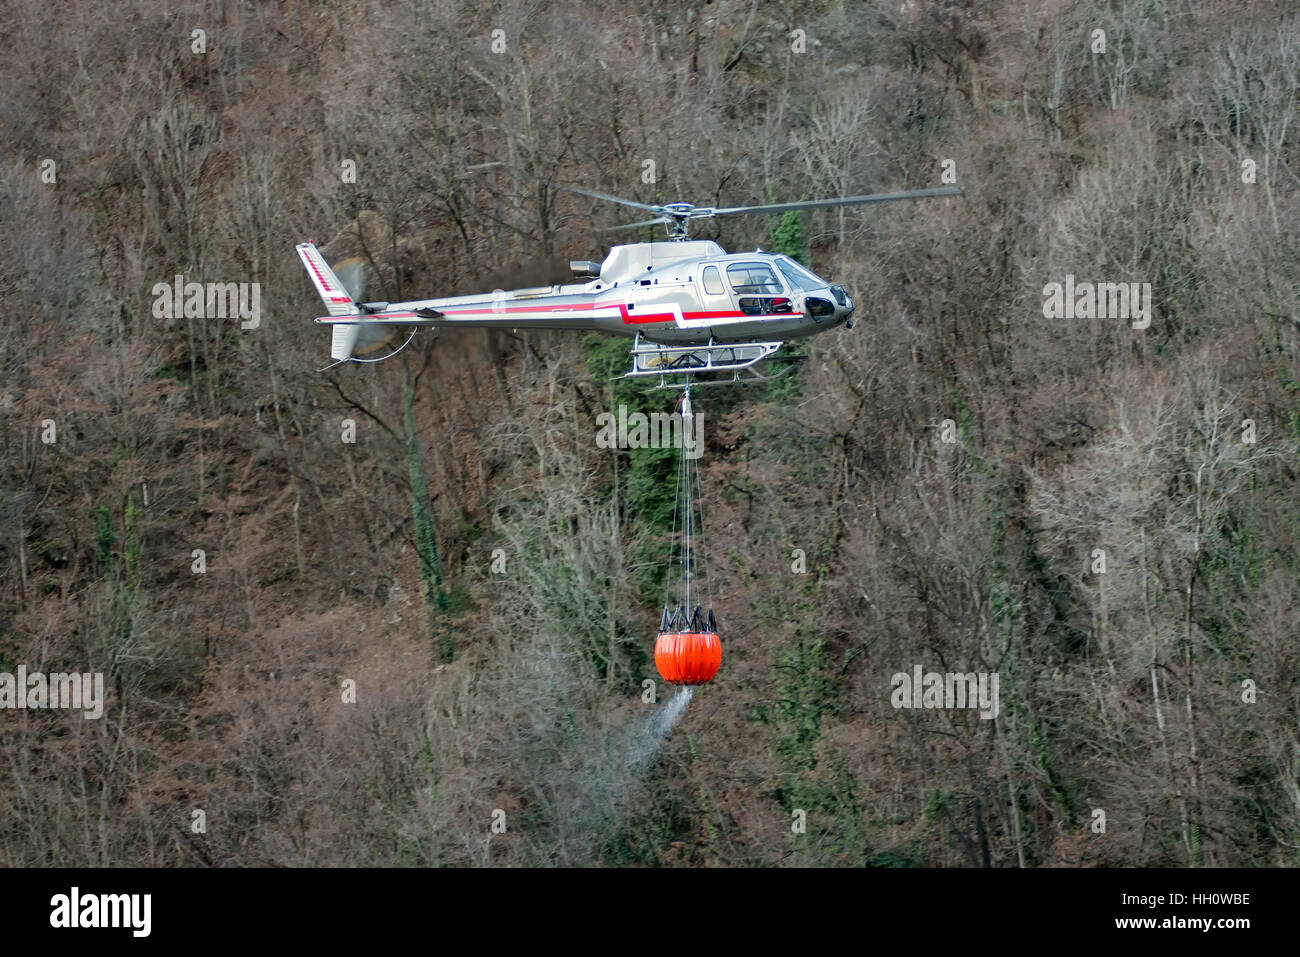 Helicopter transporting a bucket full of water suspended below the plane as it fights a mountain fire in the wilderness - Stock Image